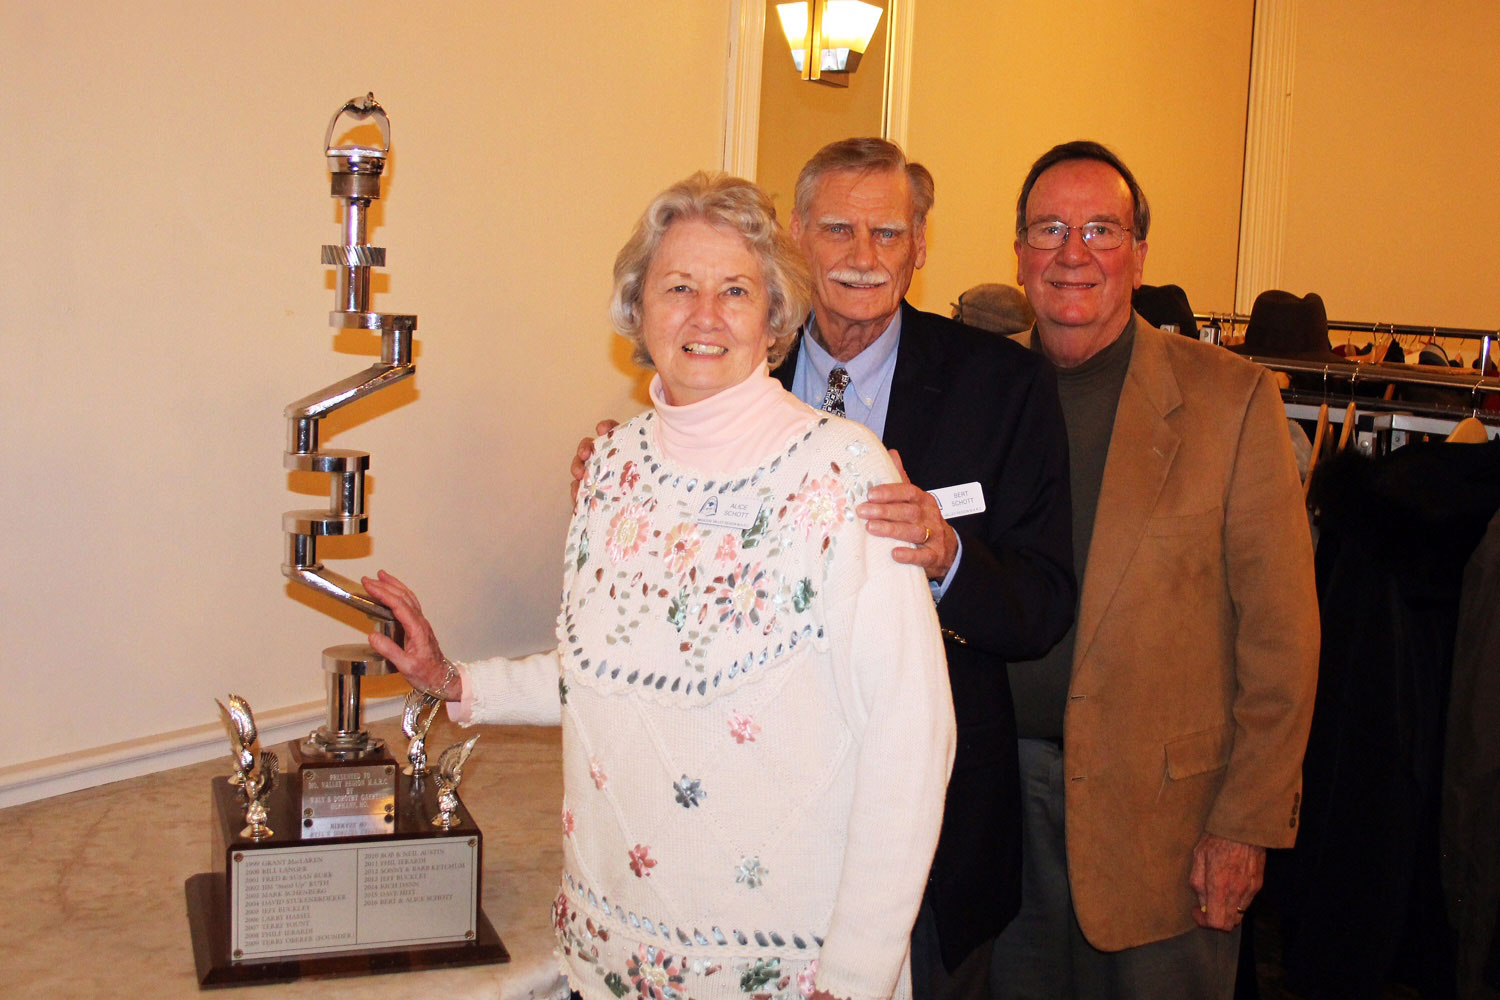 Alice and Bert Schott were chosen for the President's Trophy (Shaft) by Fred Burk